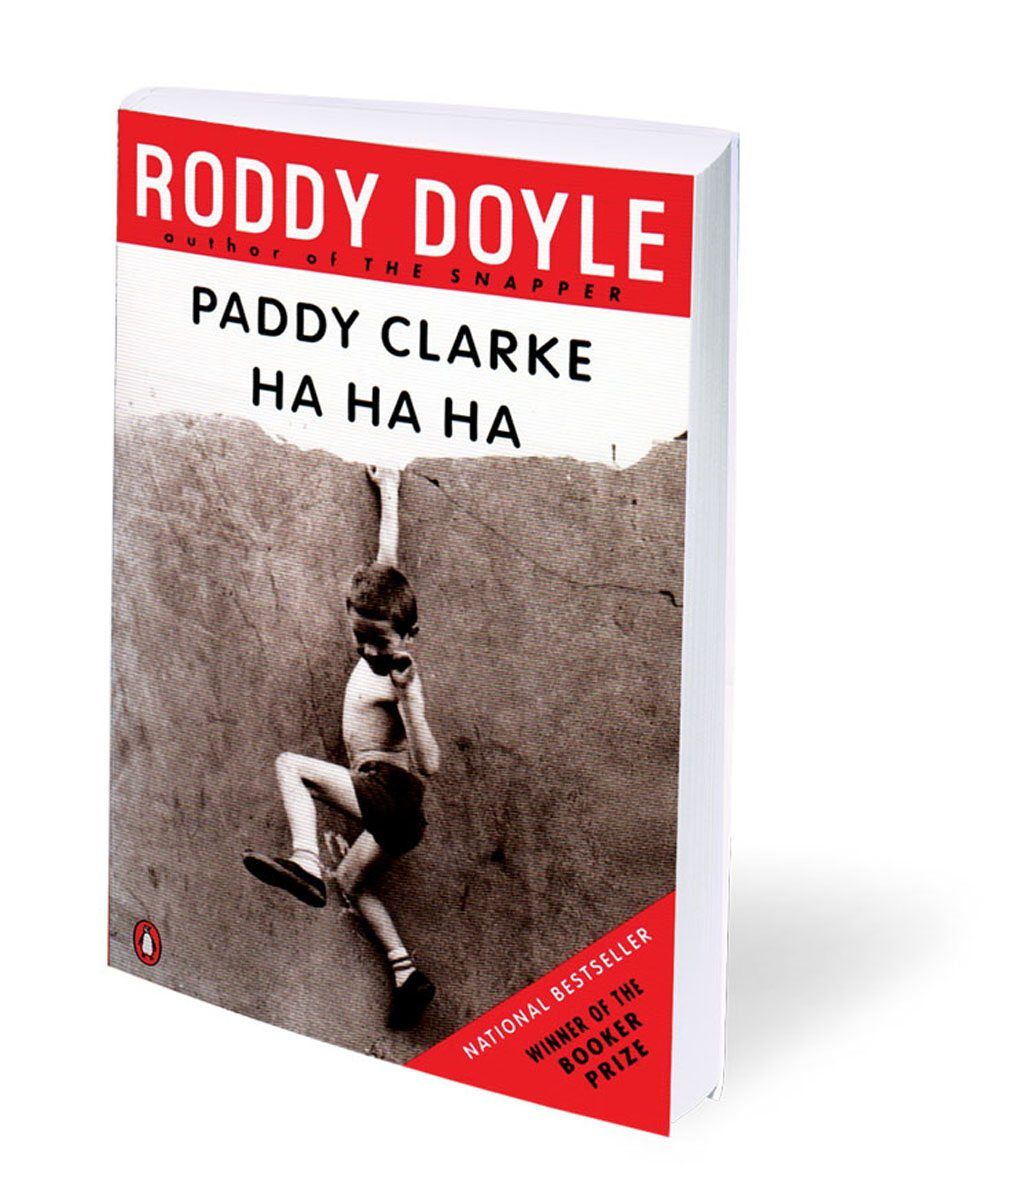 Paddy Clarke Roody Doyle Book